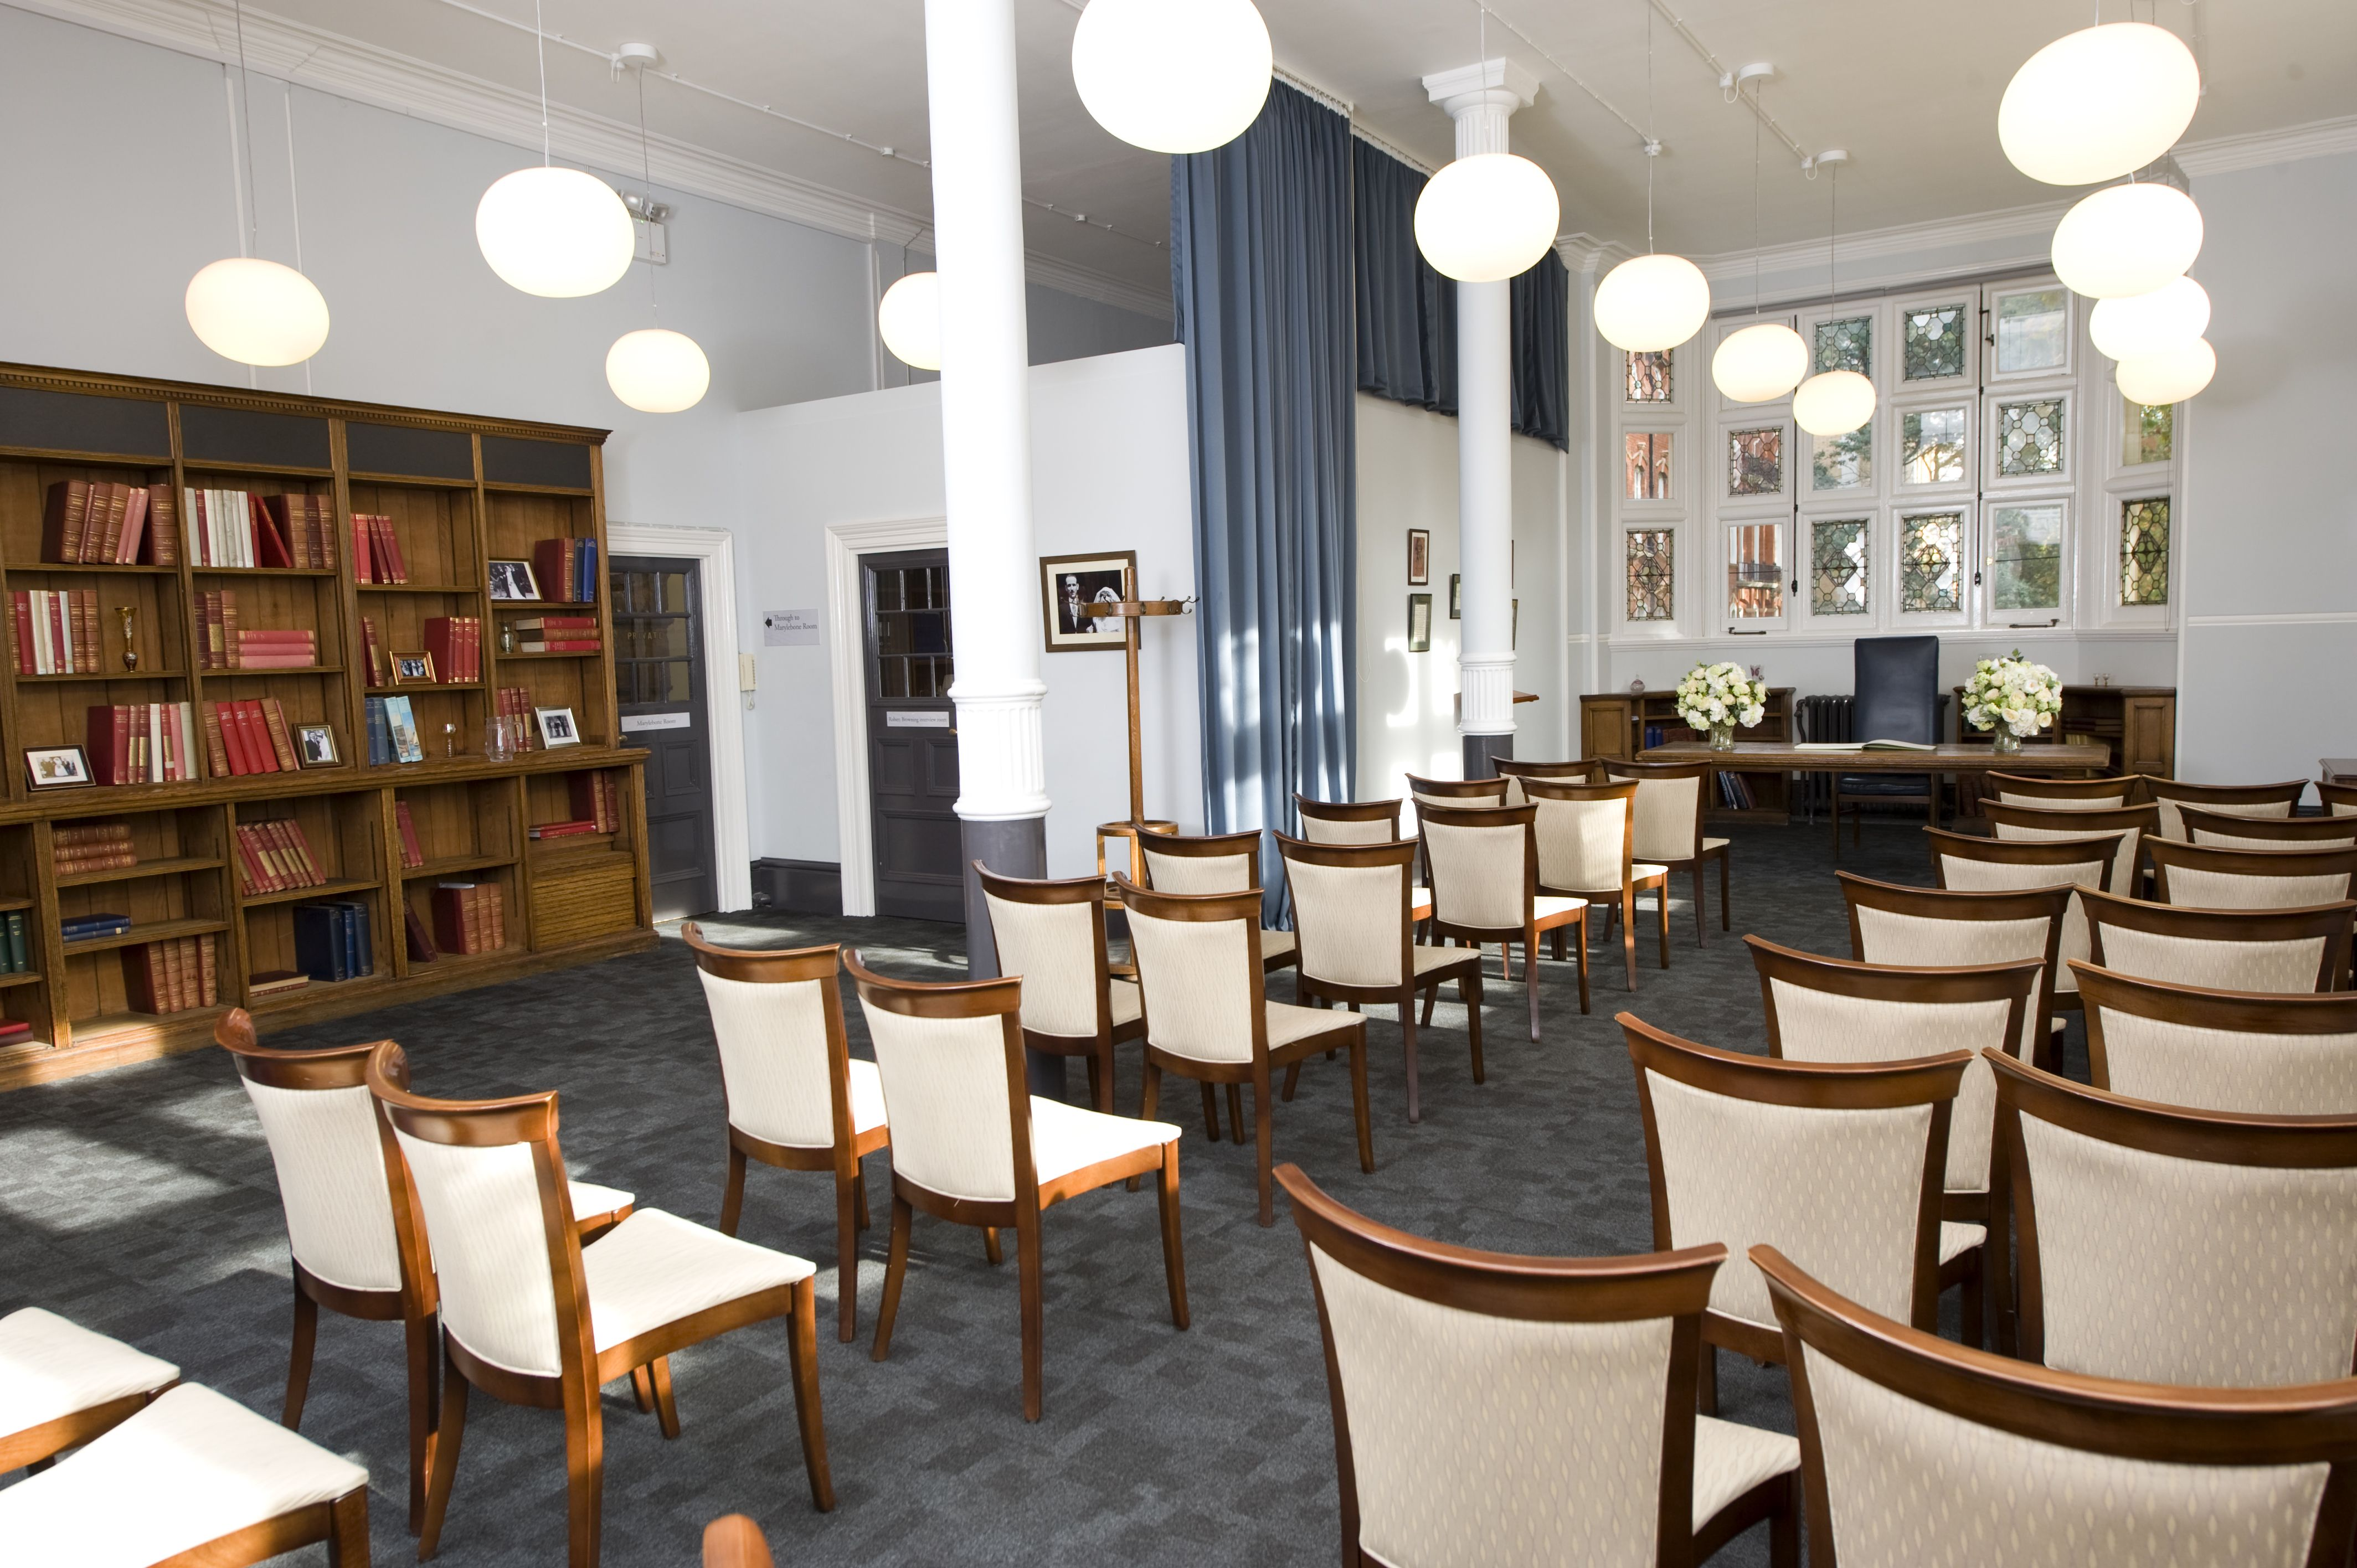 The Mayfair Room at Mayfair Library